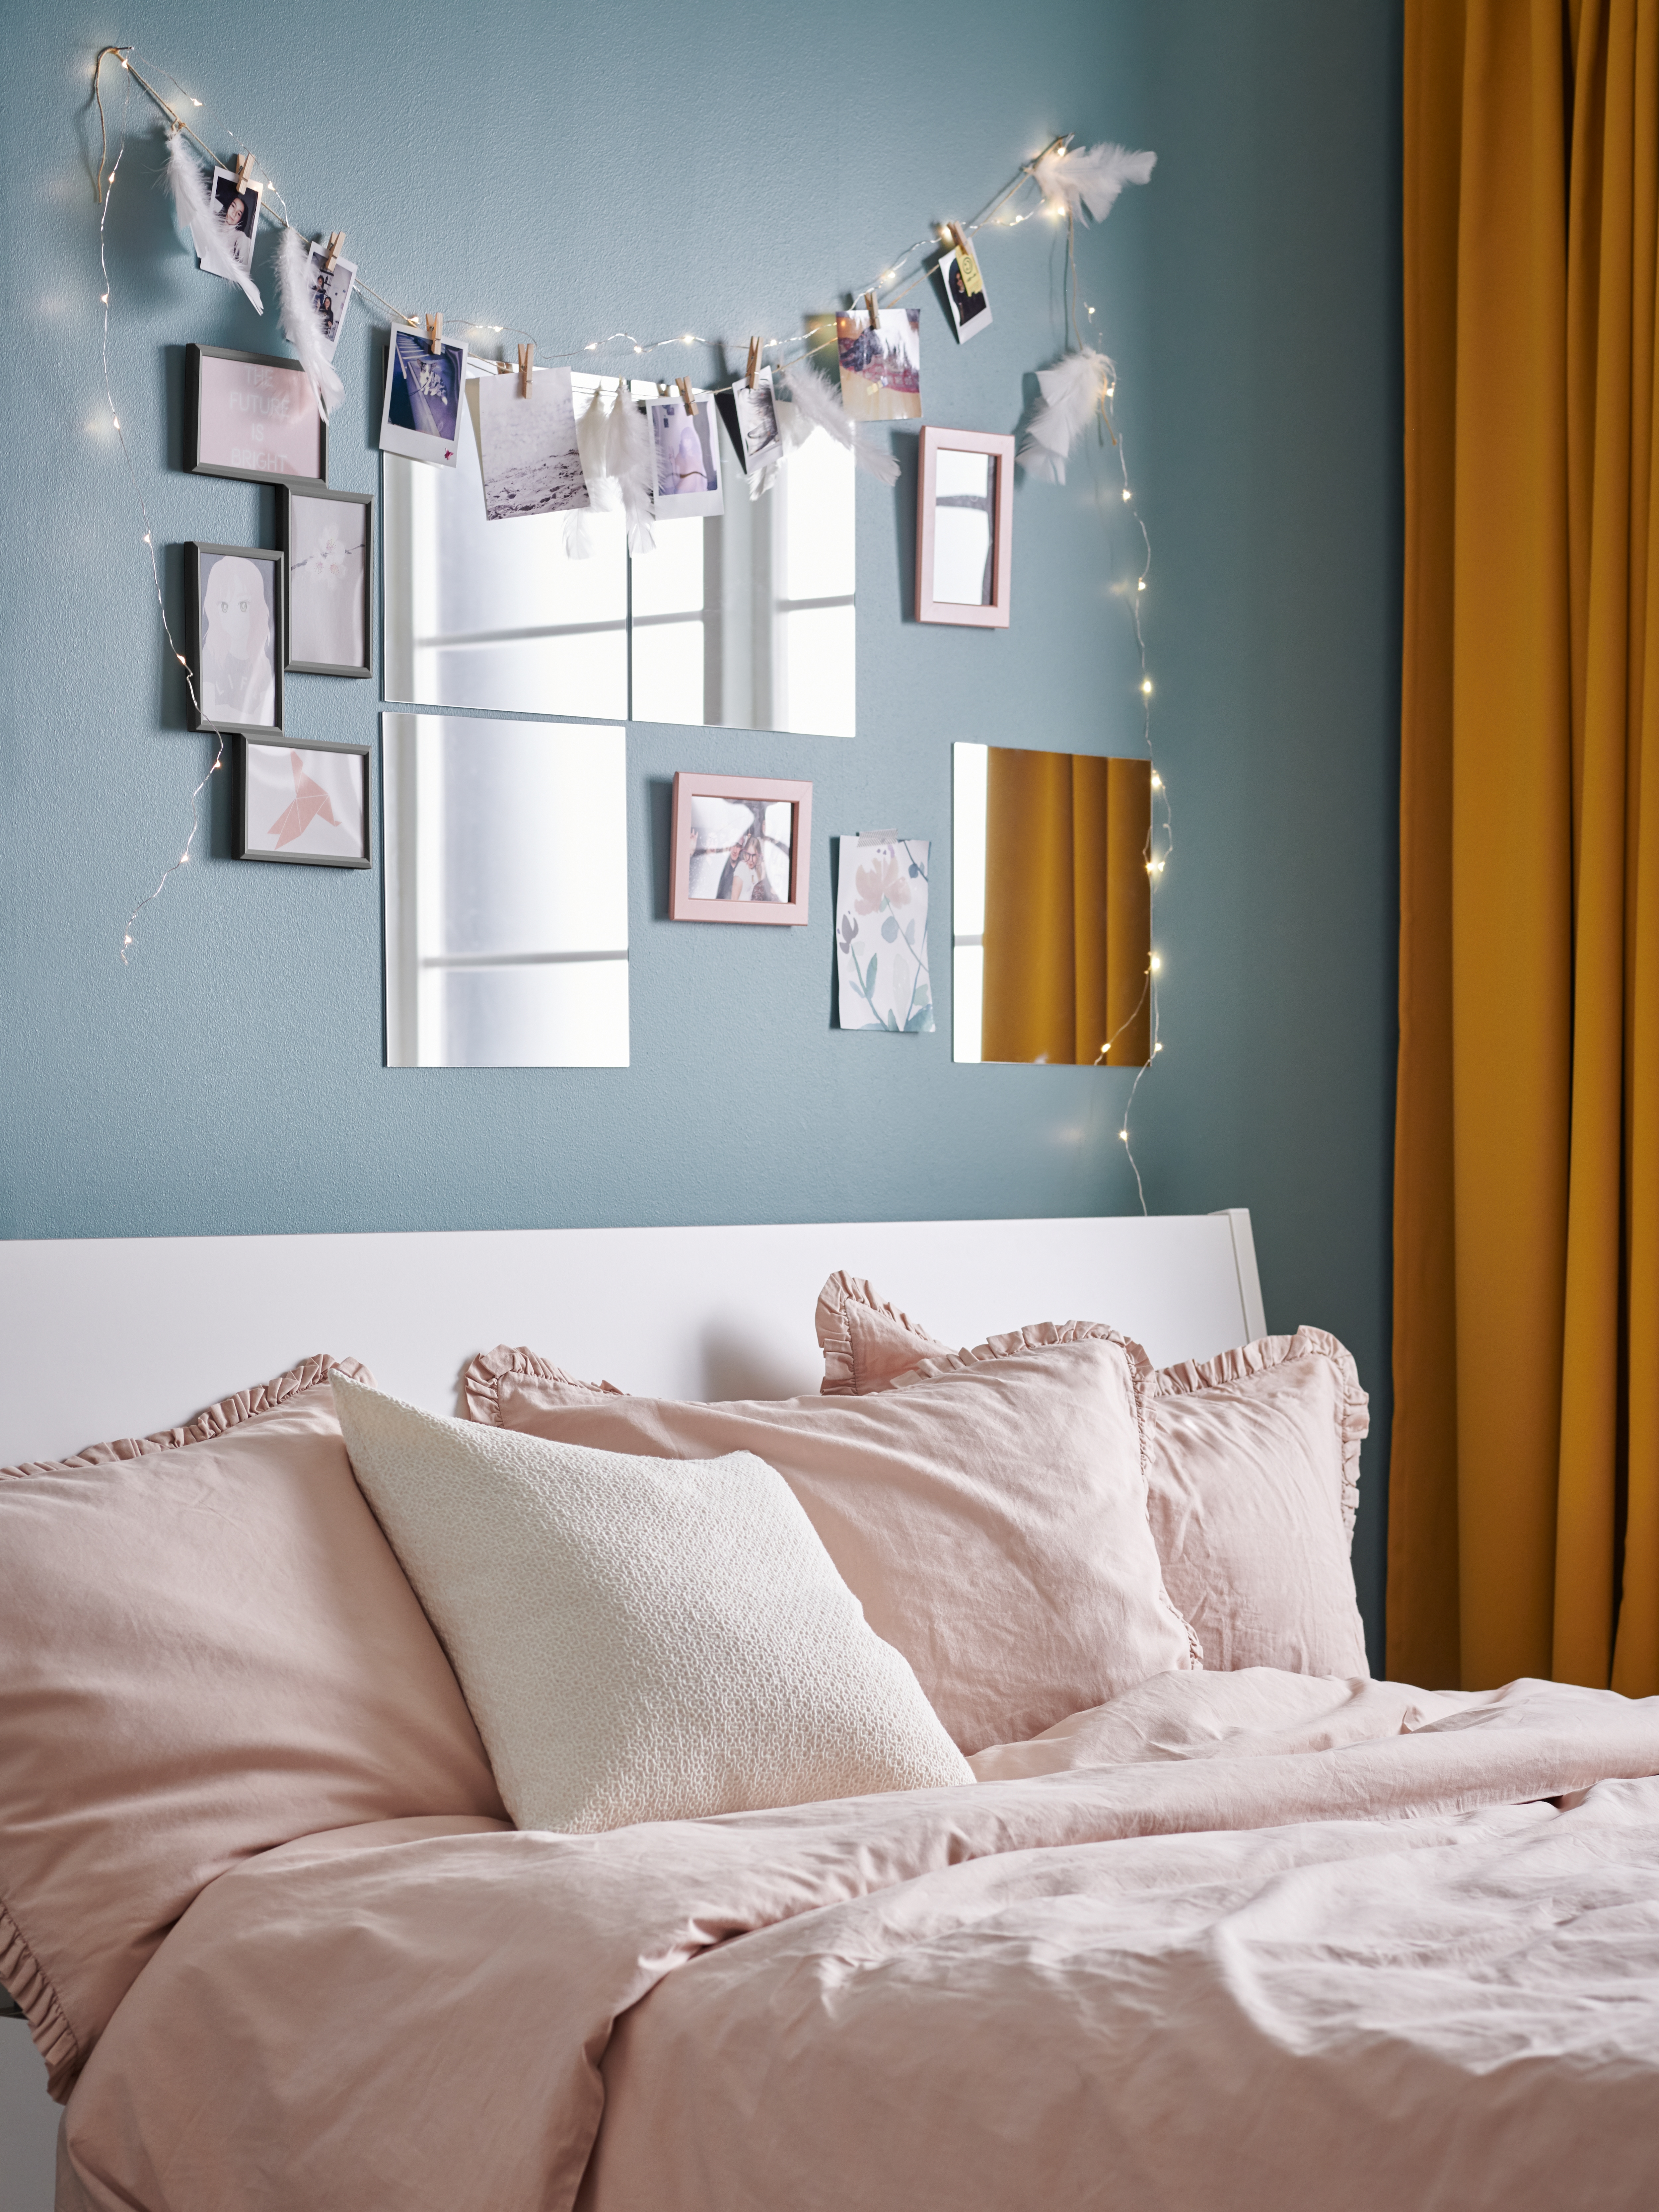 A bed with the wall over its headboard covered with a decorative display of YLLEVAD frames, LOTS mirrors and lighting chains.